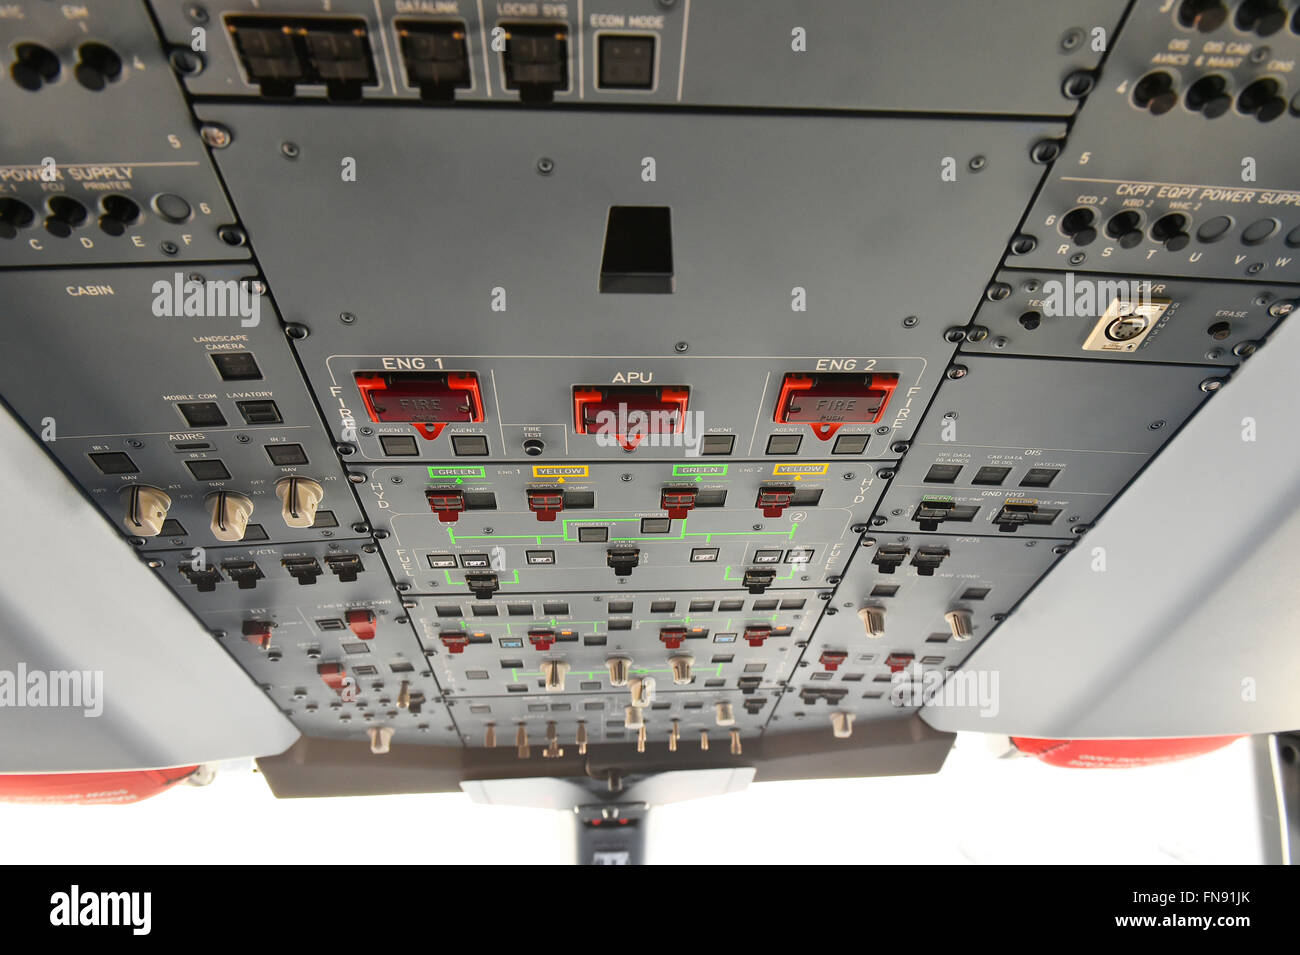 Fire Switch Stock Photos Images Alamy 07 Jk Fuse Box Cockpit Overhead Panel Door Look Radio Transponder